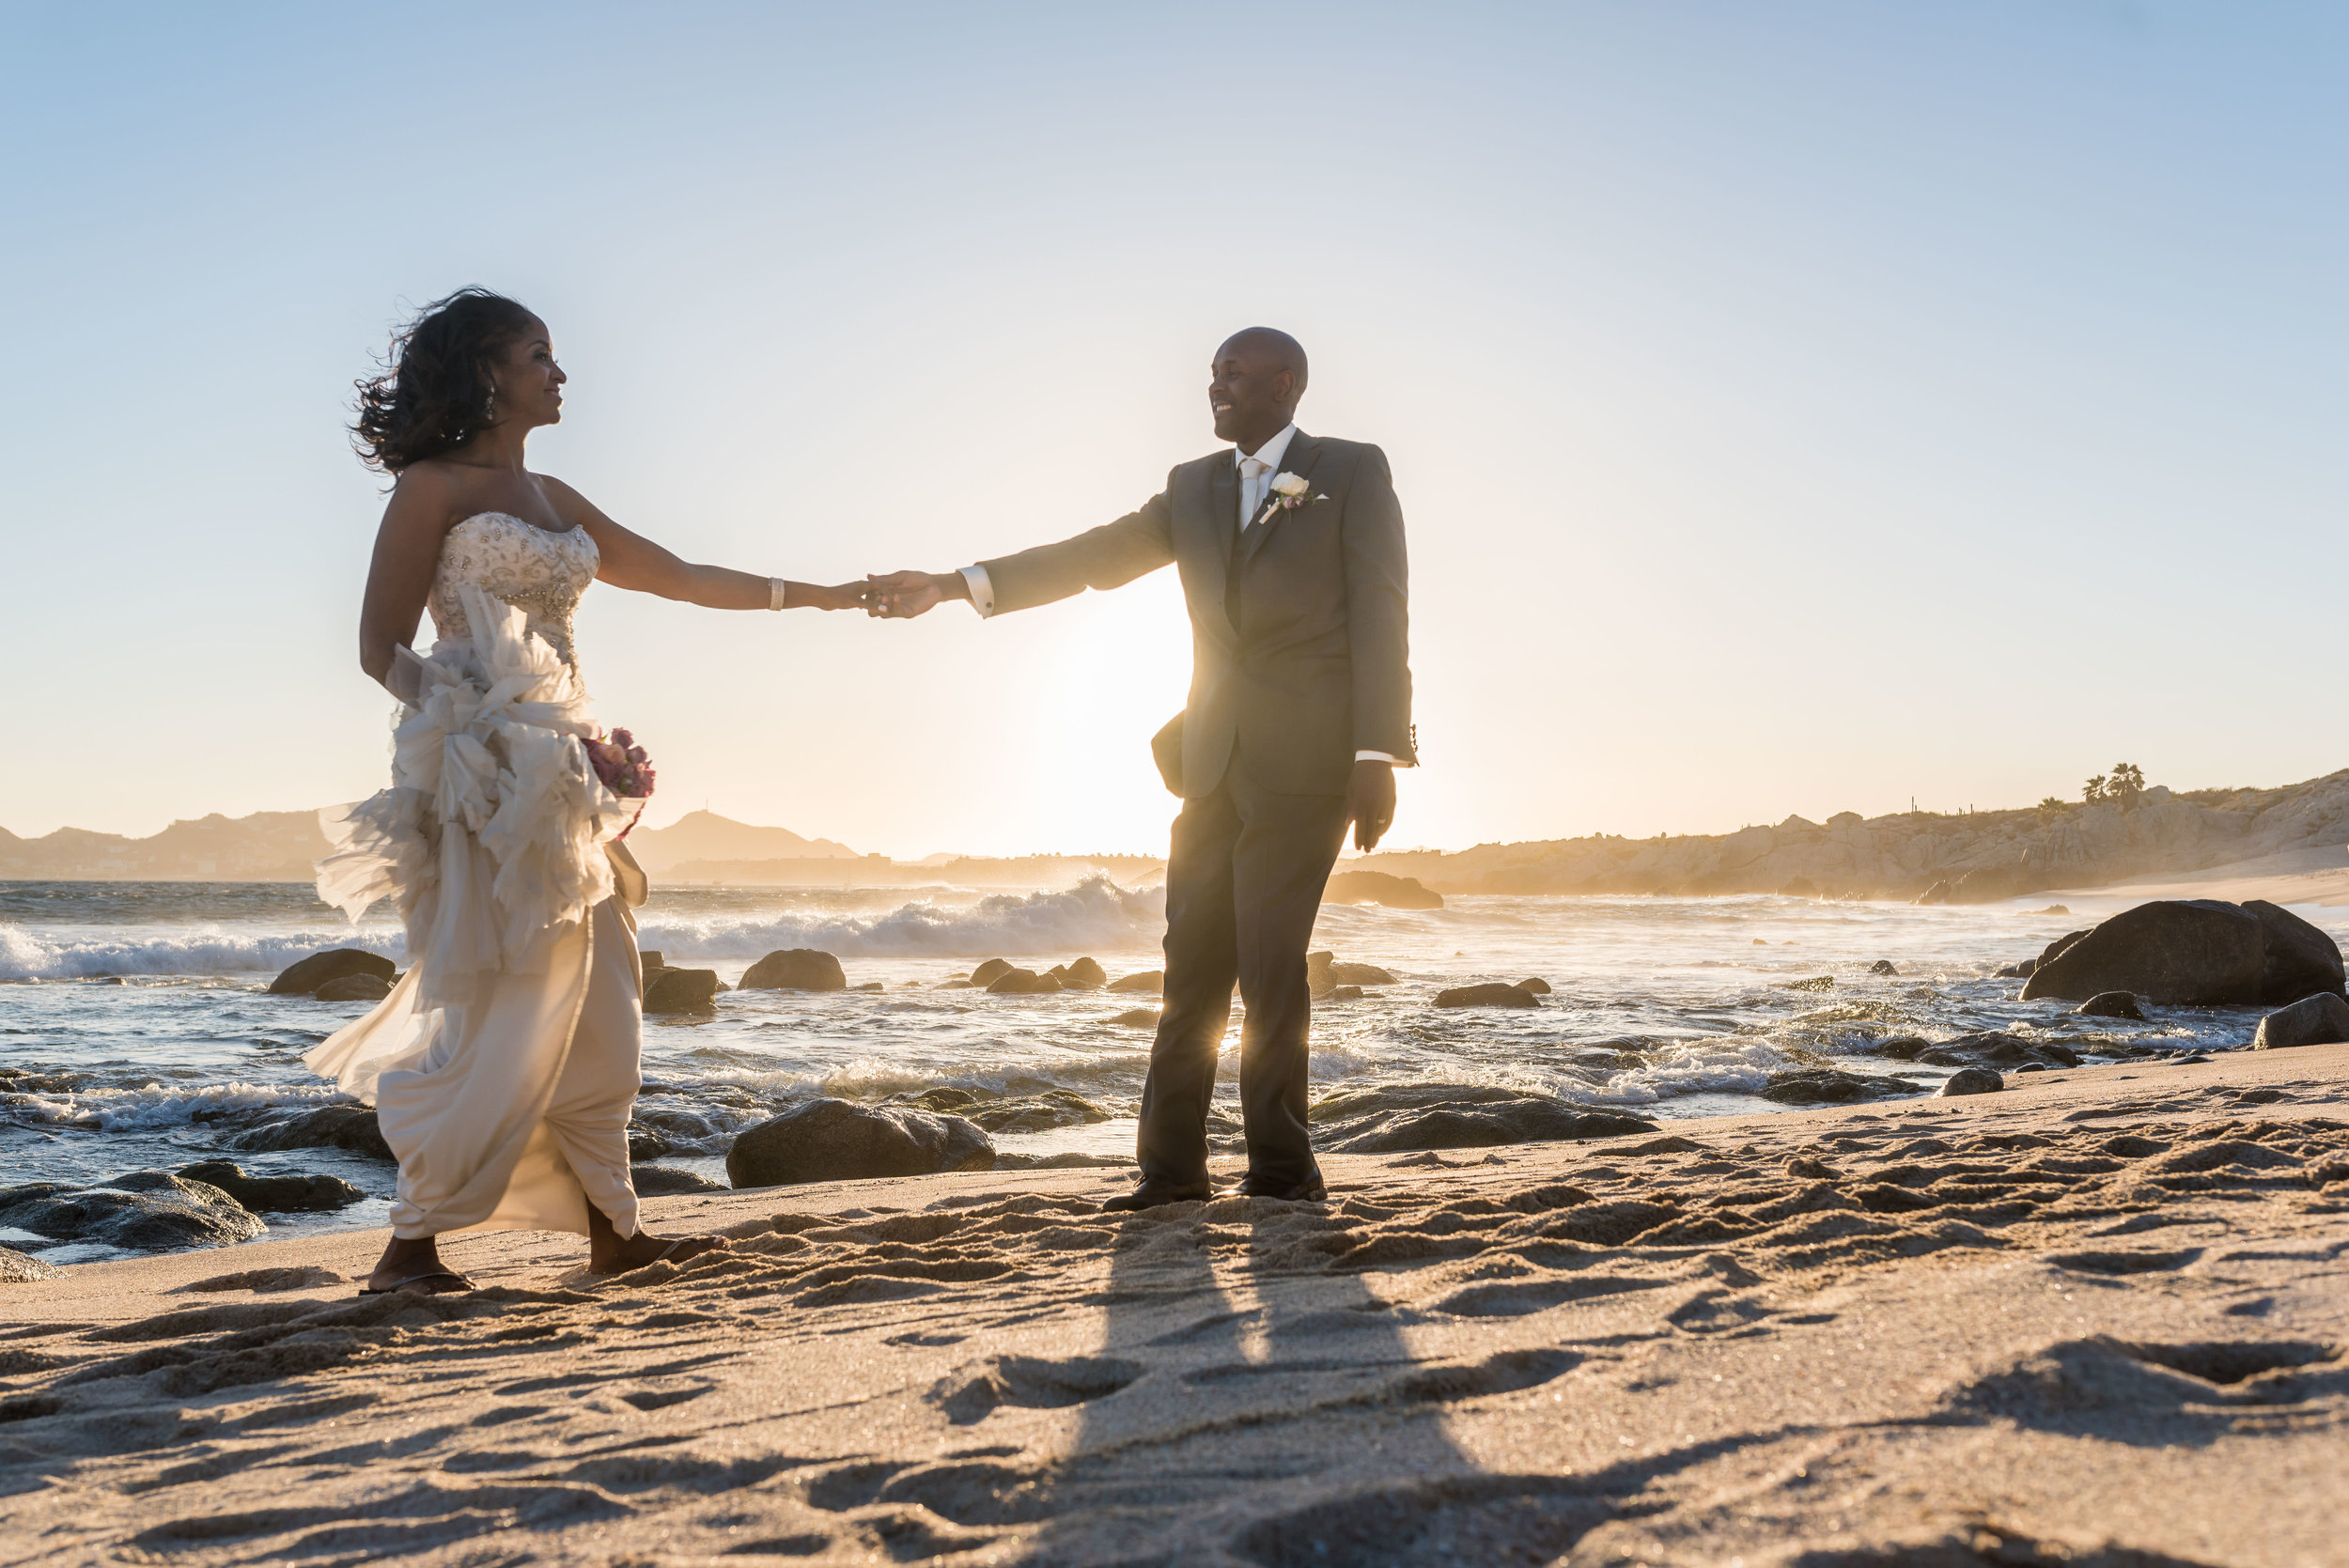 Bride and groom playing on the beach during their sunset photo session